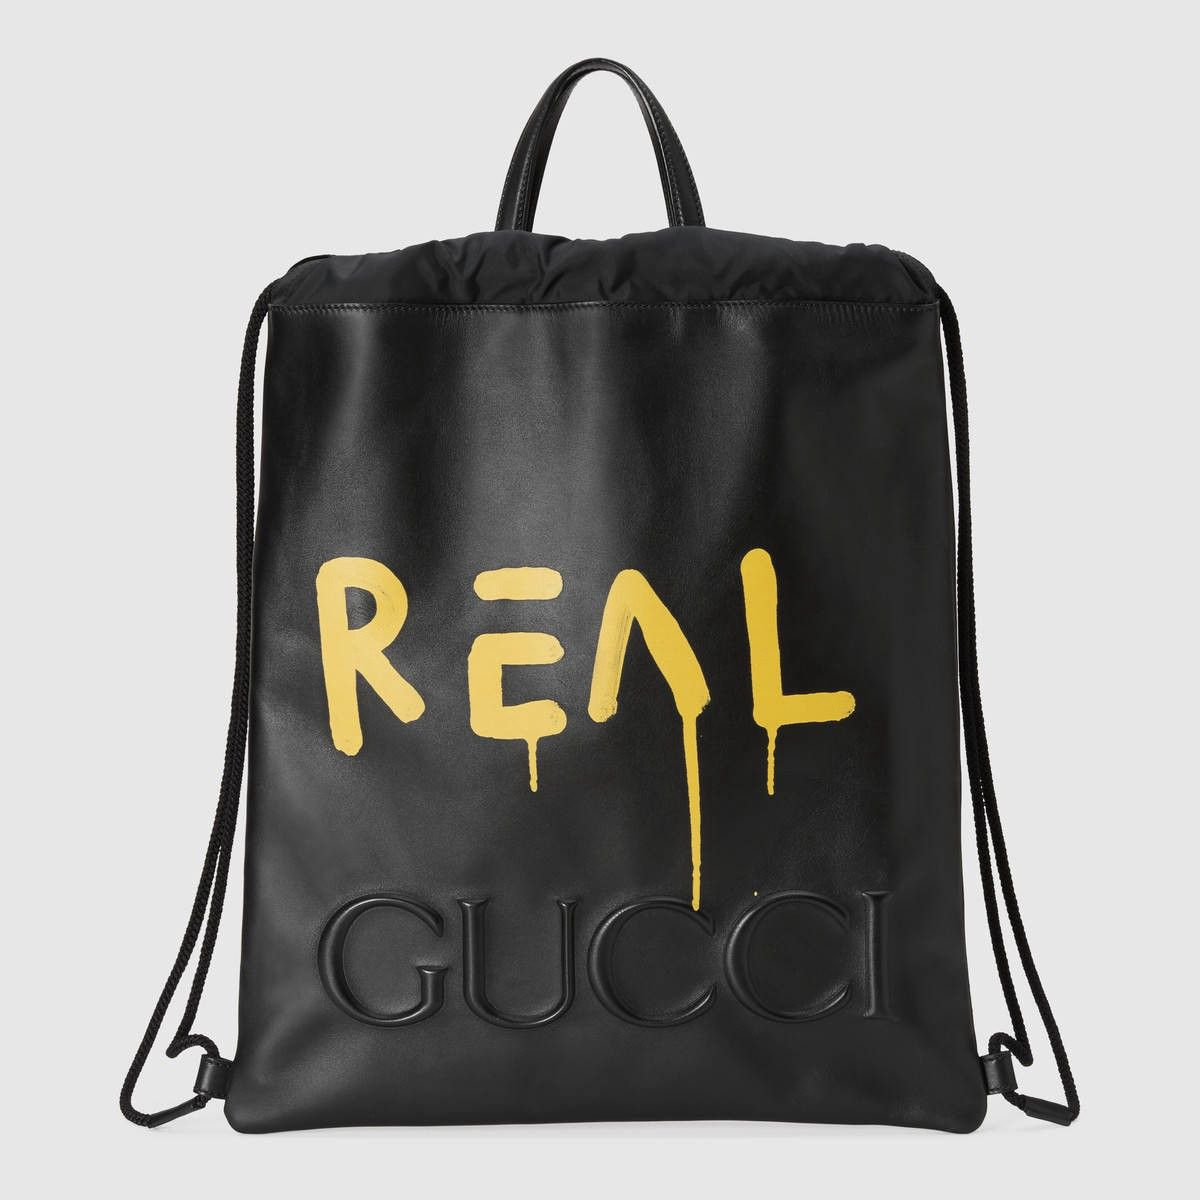 GUCCI GucciGhost drawstring backpack - black leather.  gucci  bags  leather   lining  nylon  backpacks  lace   b04b489c641a8